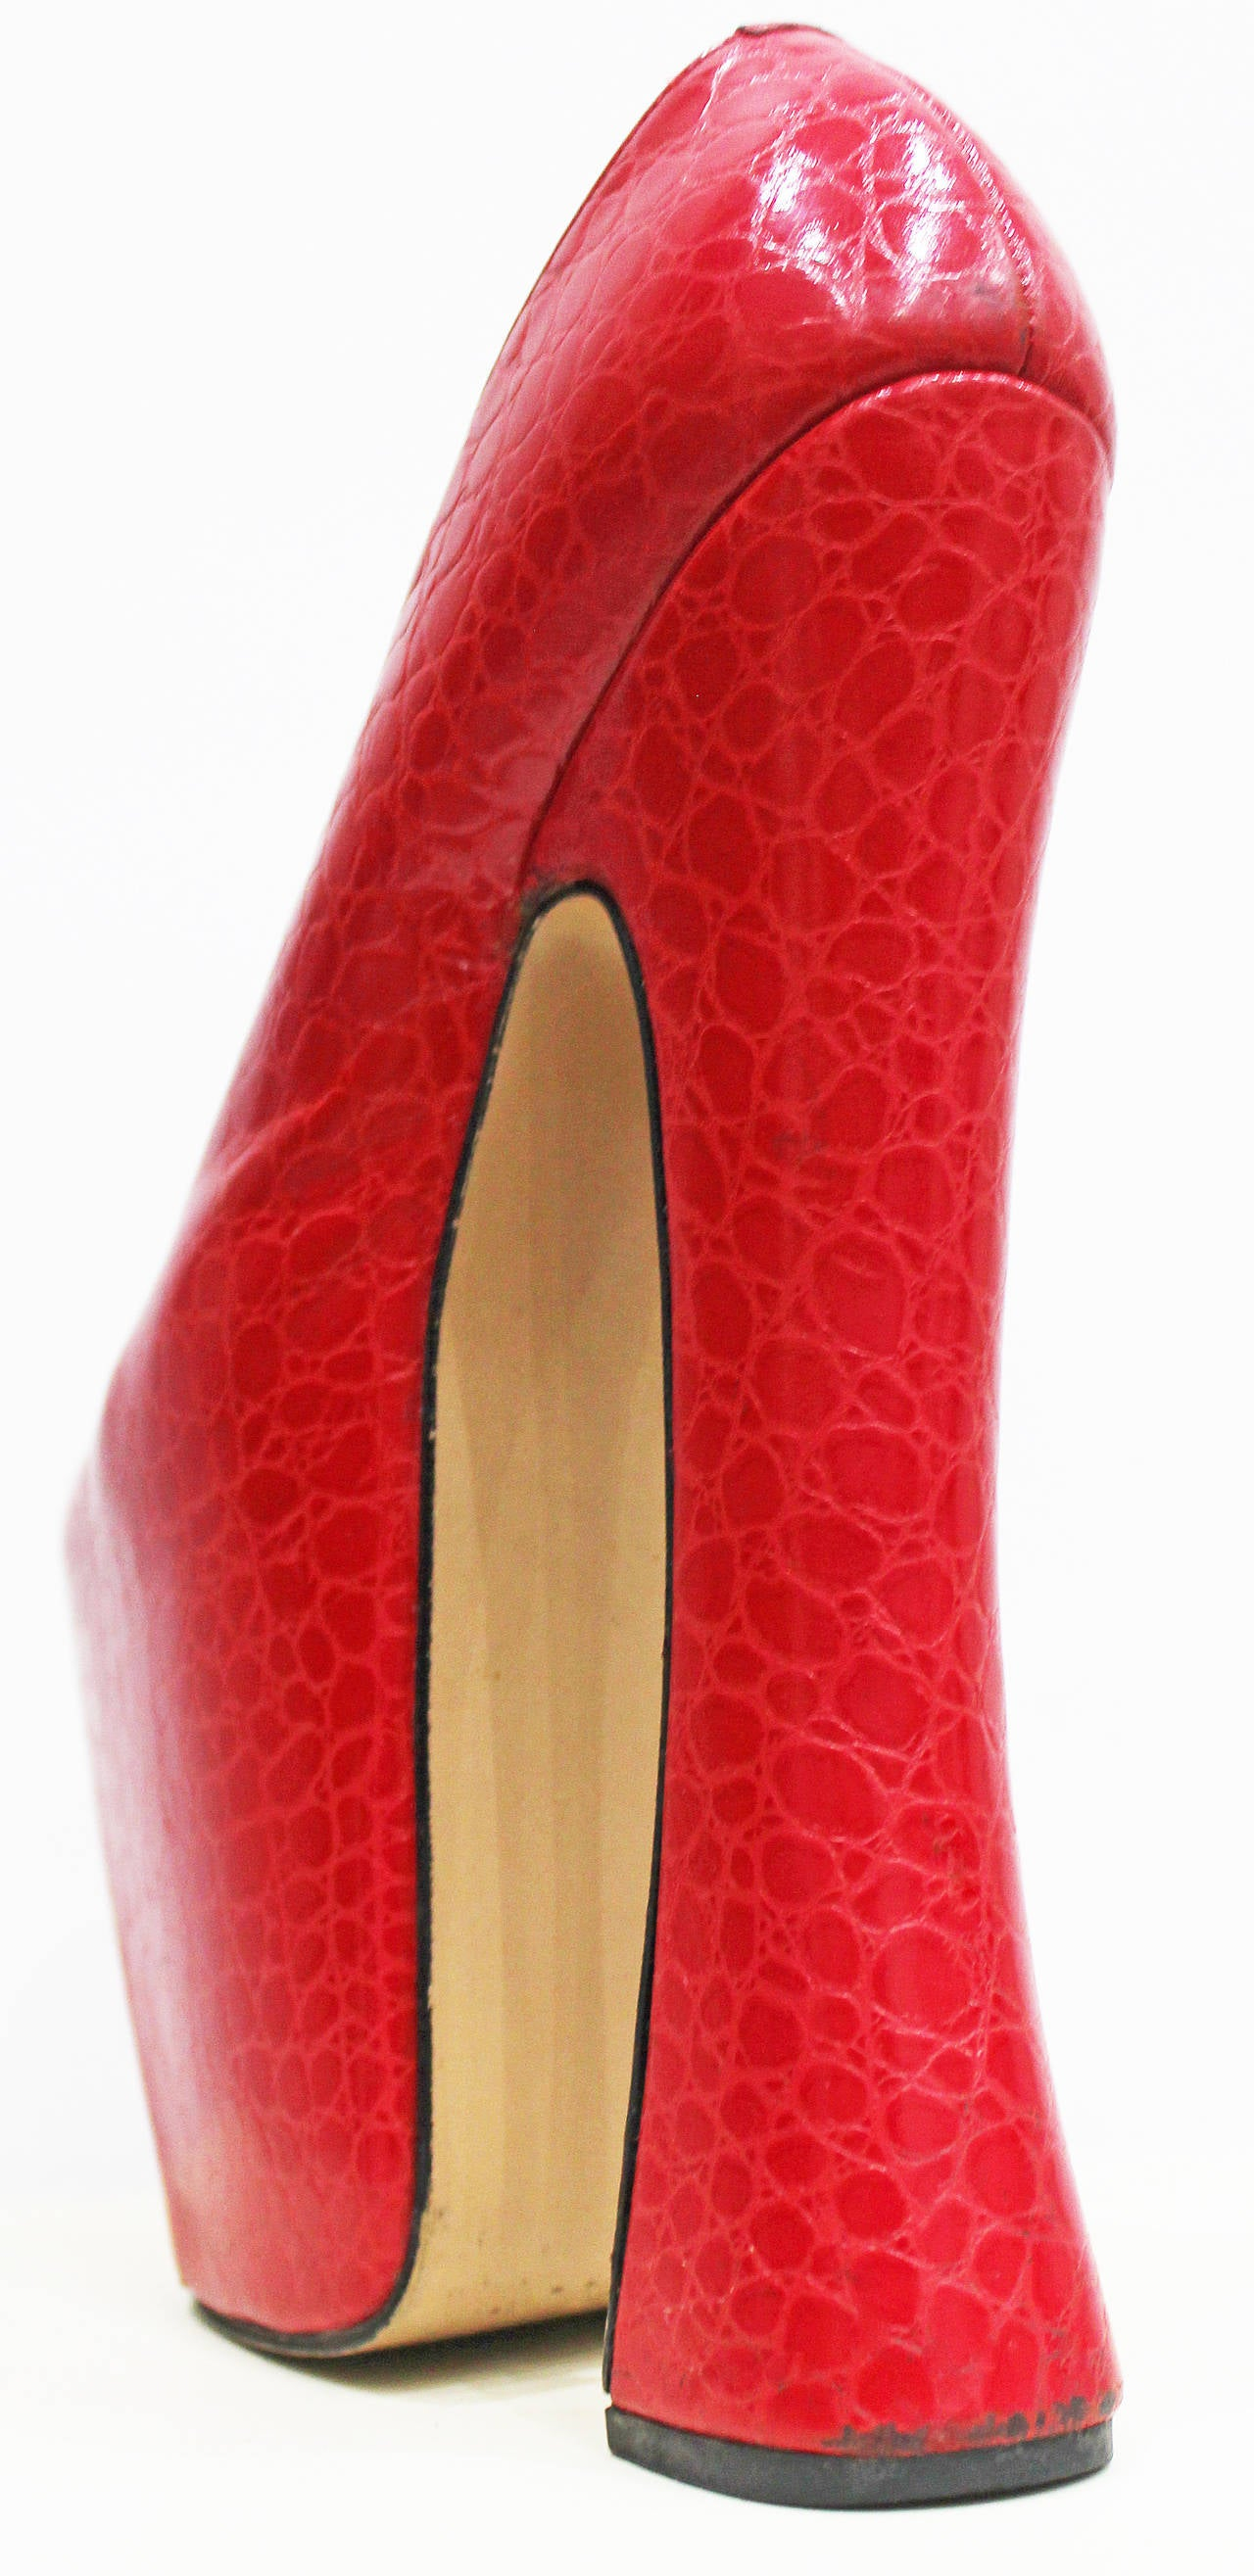 Iconic Vivienne Westwood Super elevated court shoe c. 1993 4